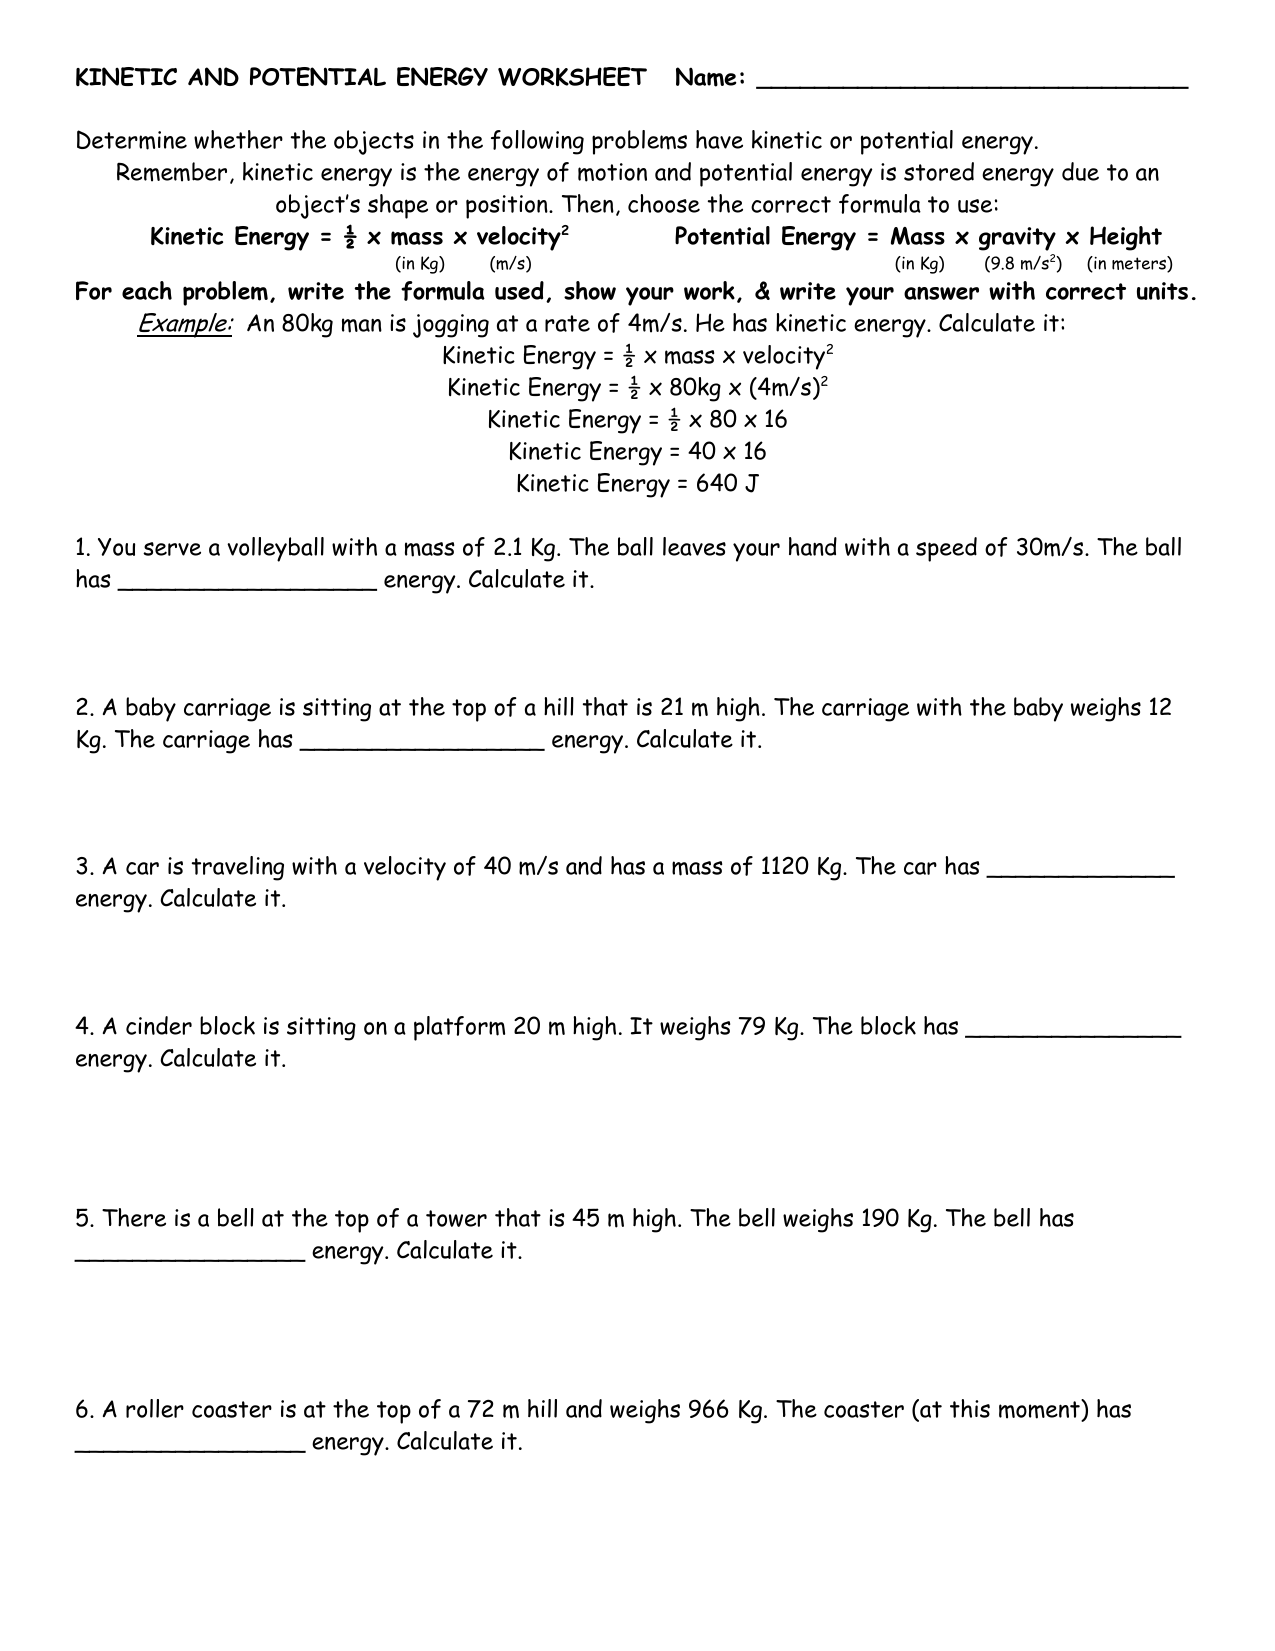 Kinetic And Potential Energy Worksheet